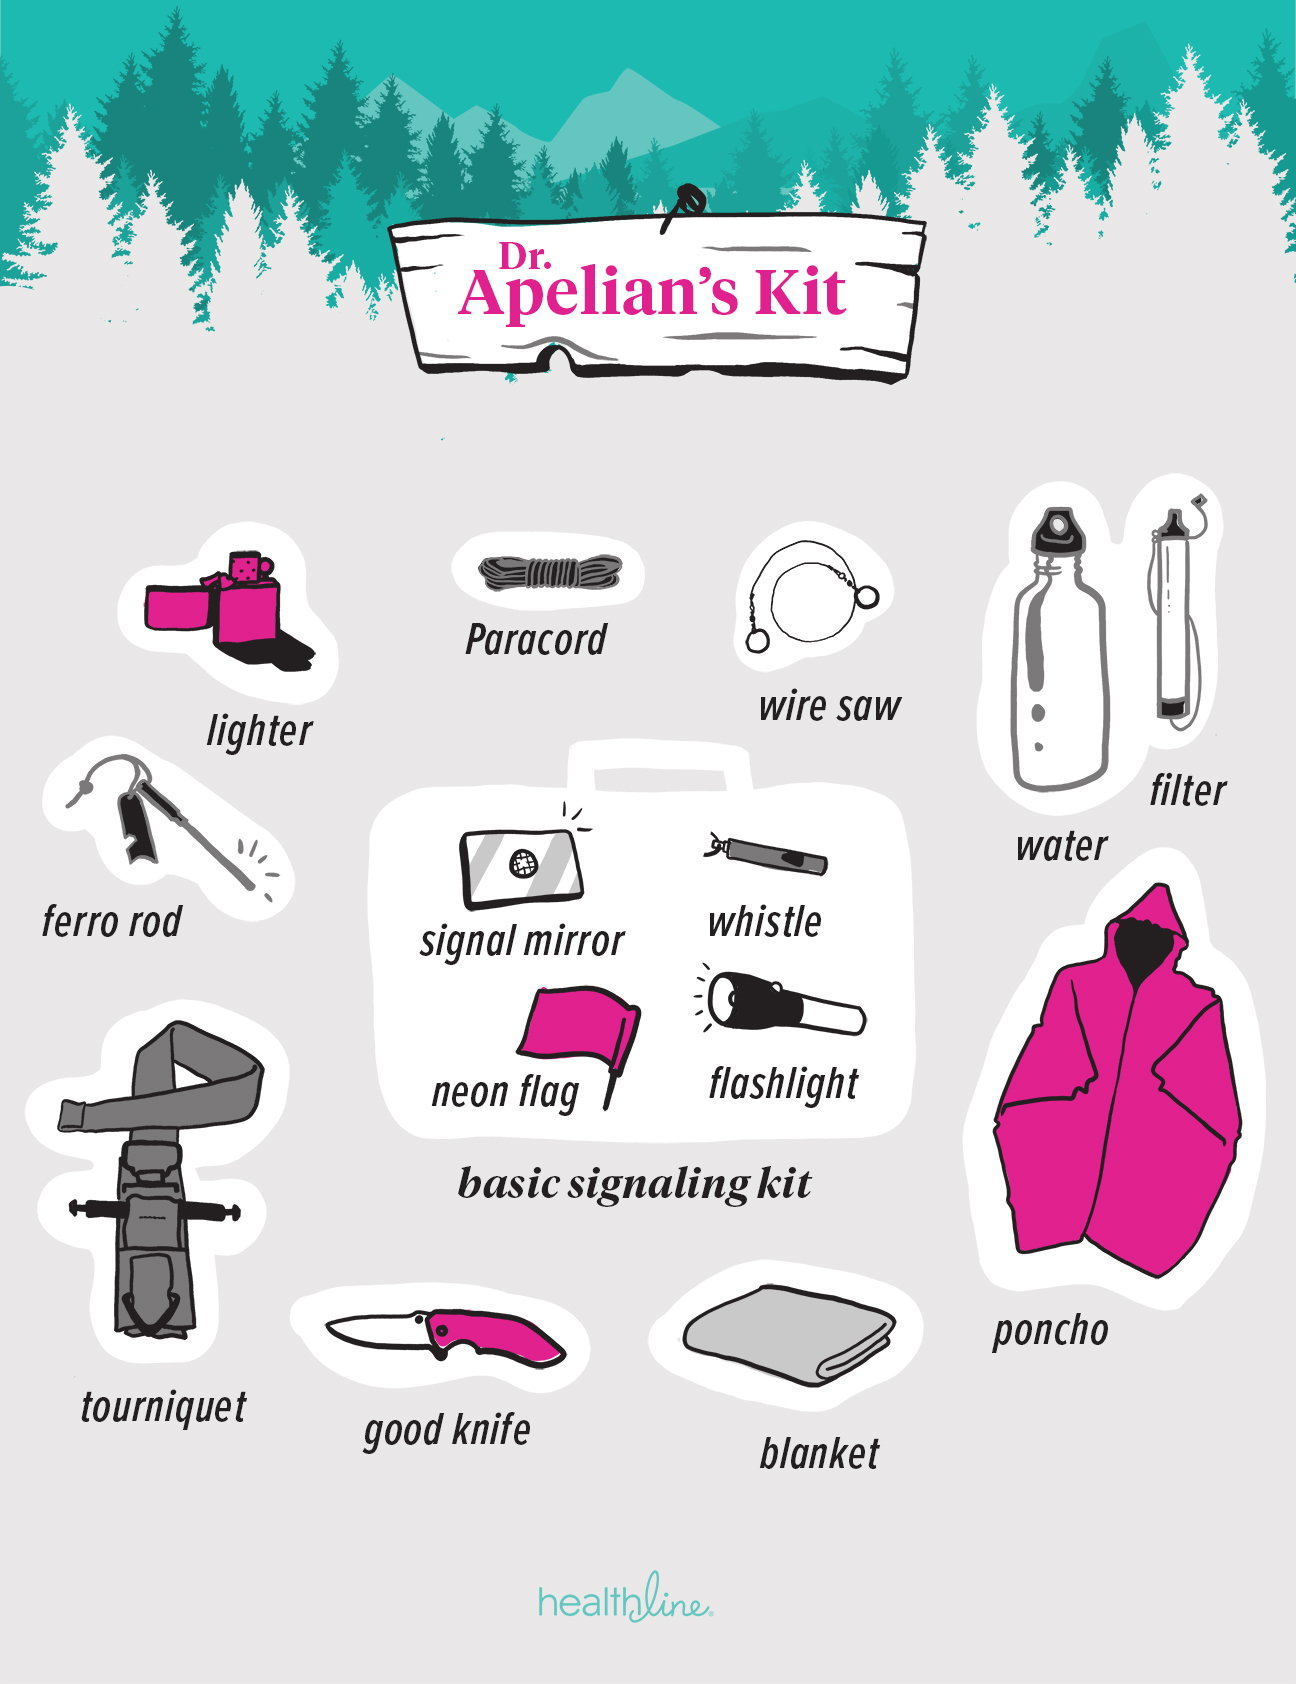 How to Prepare Your Emergency Survival Kit